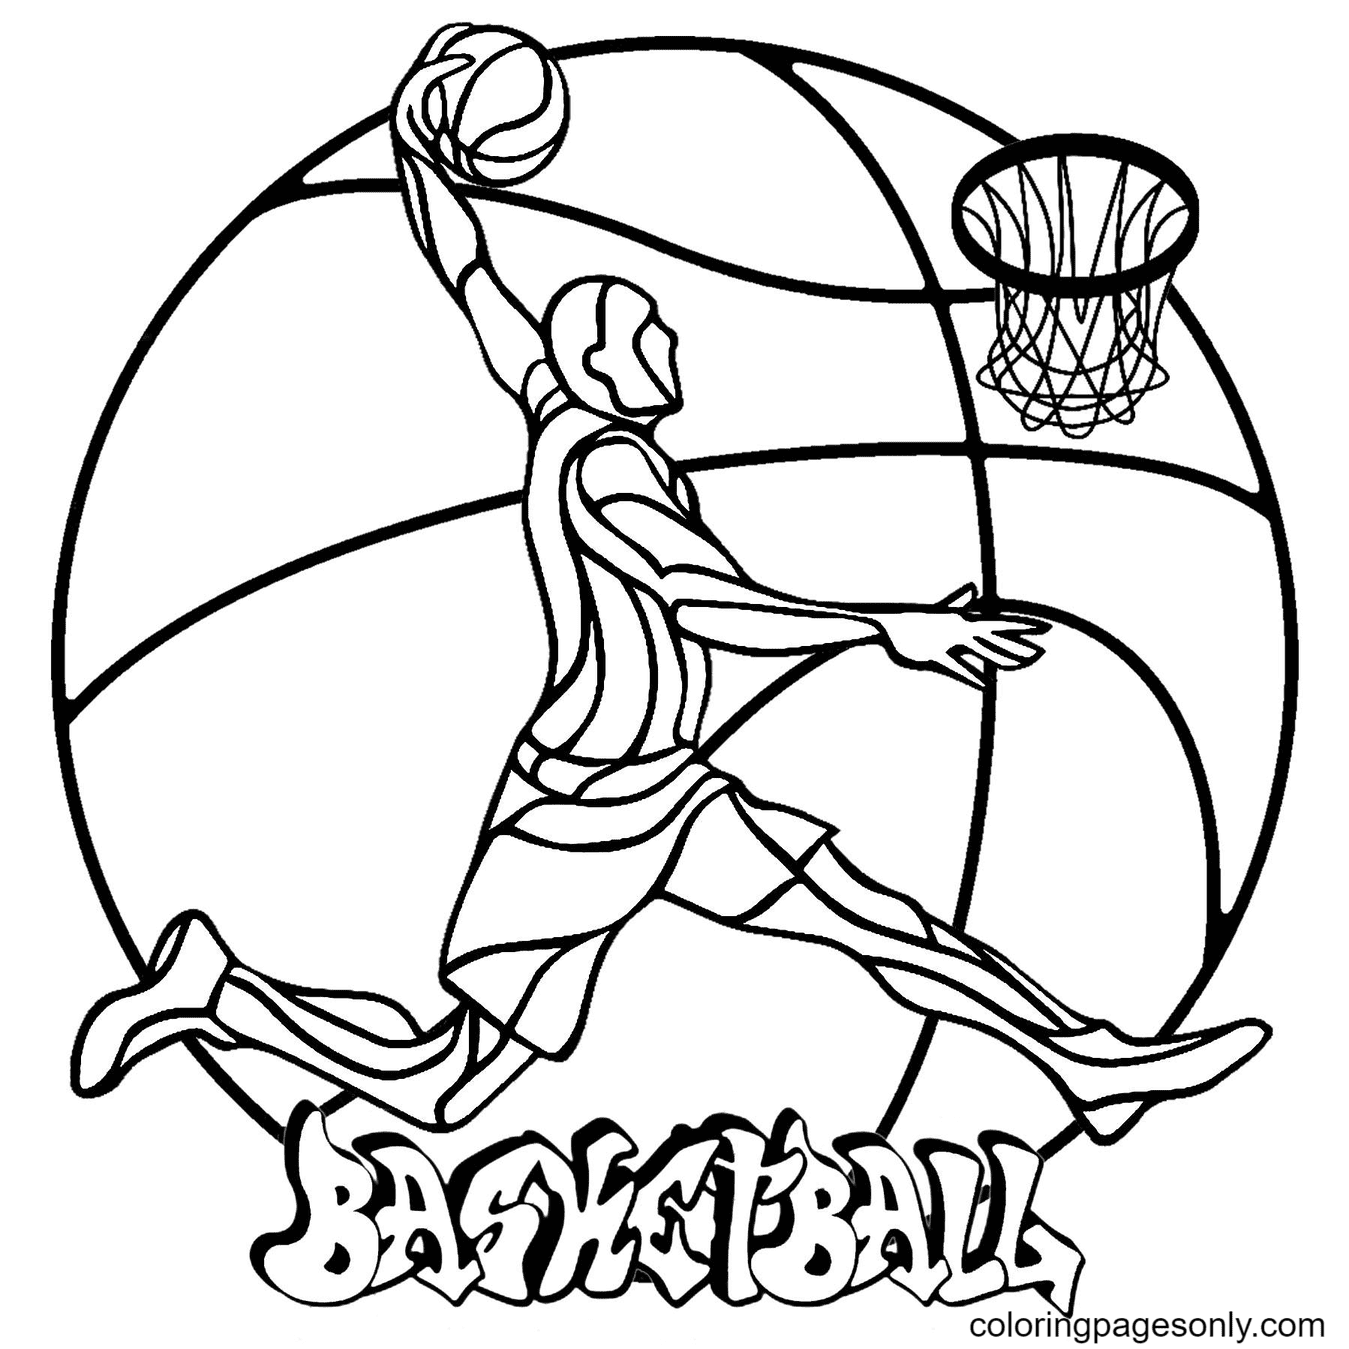 Player Throws The Ball into The Basket Coloring Page